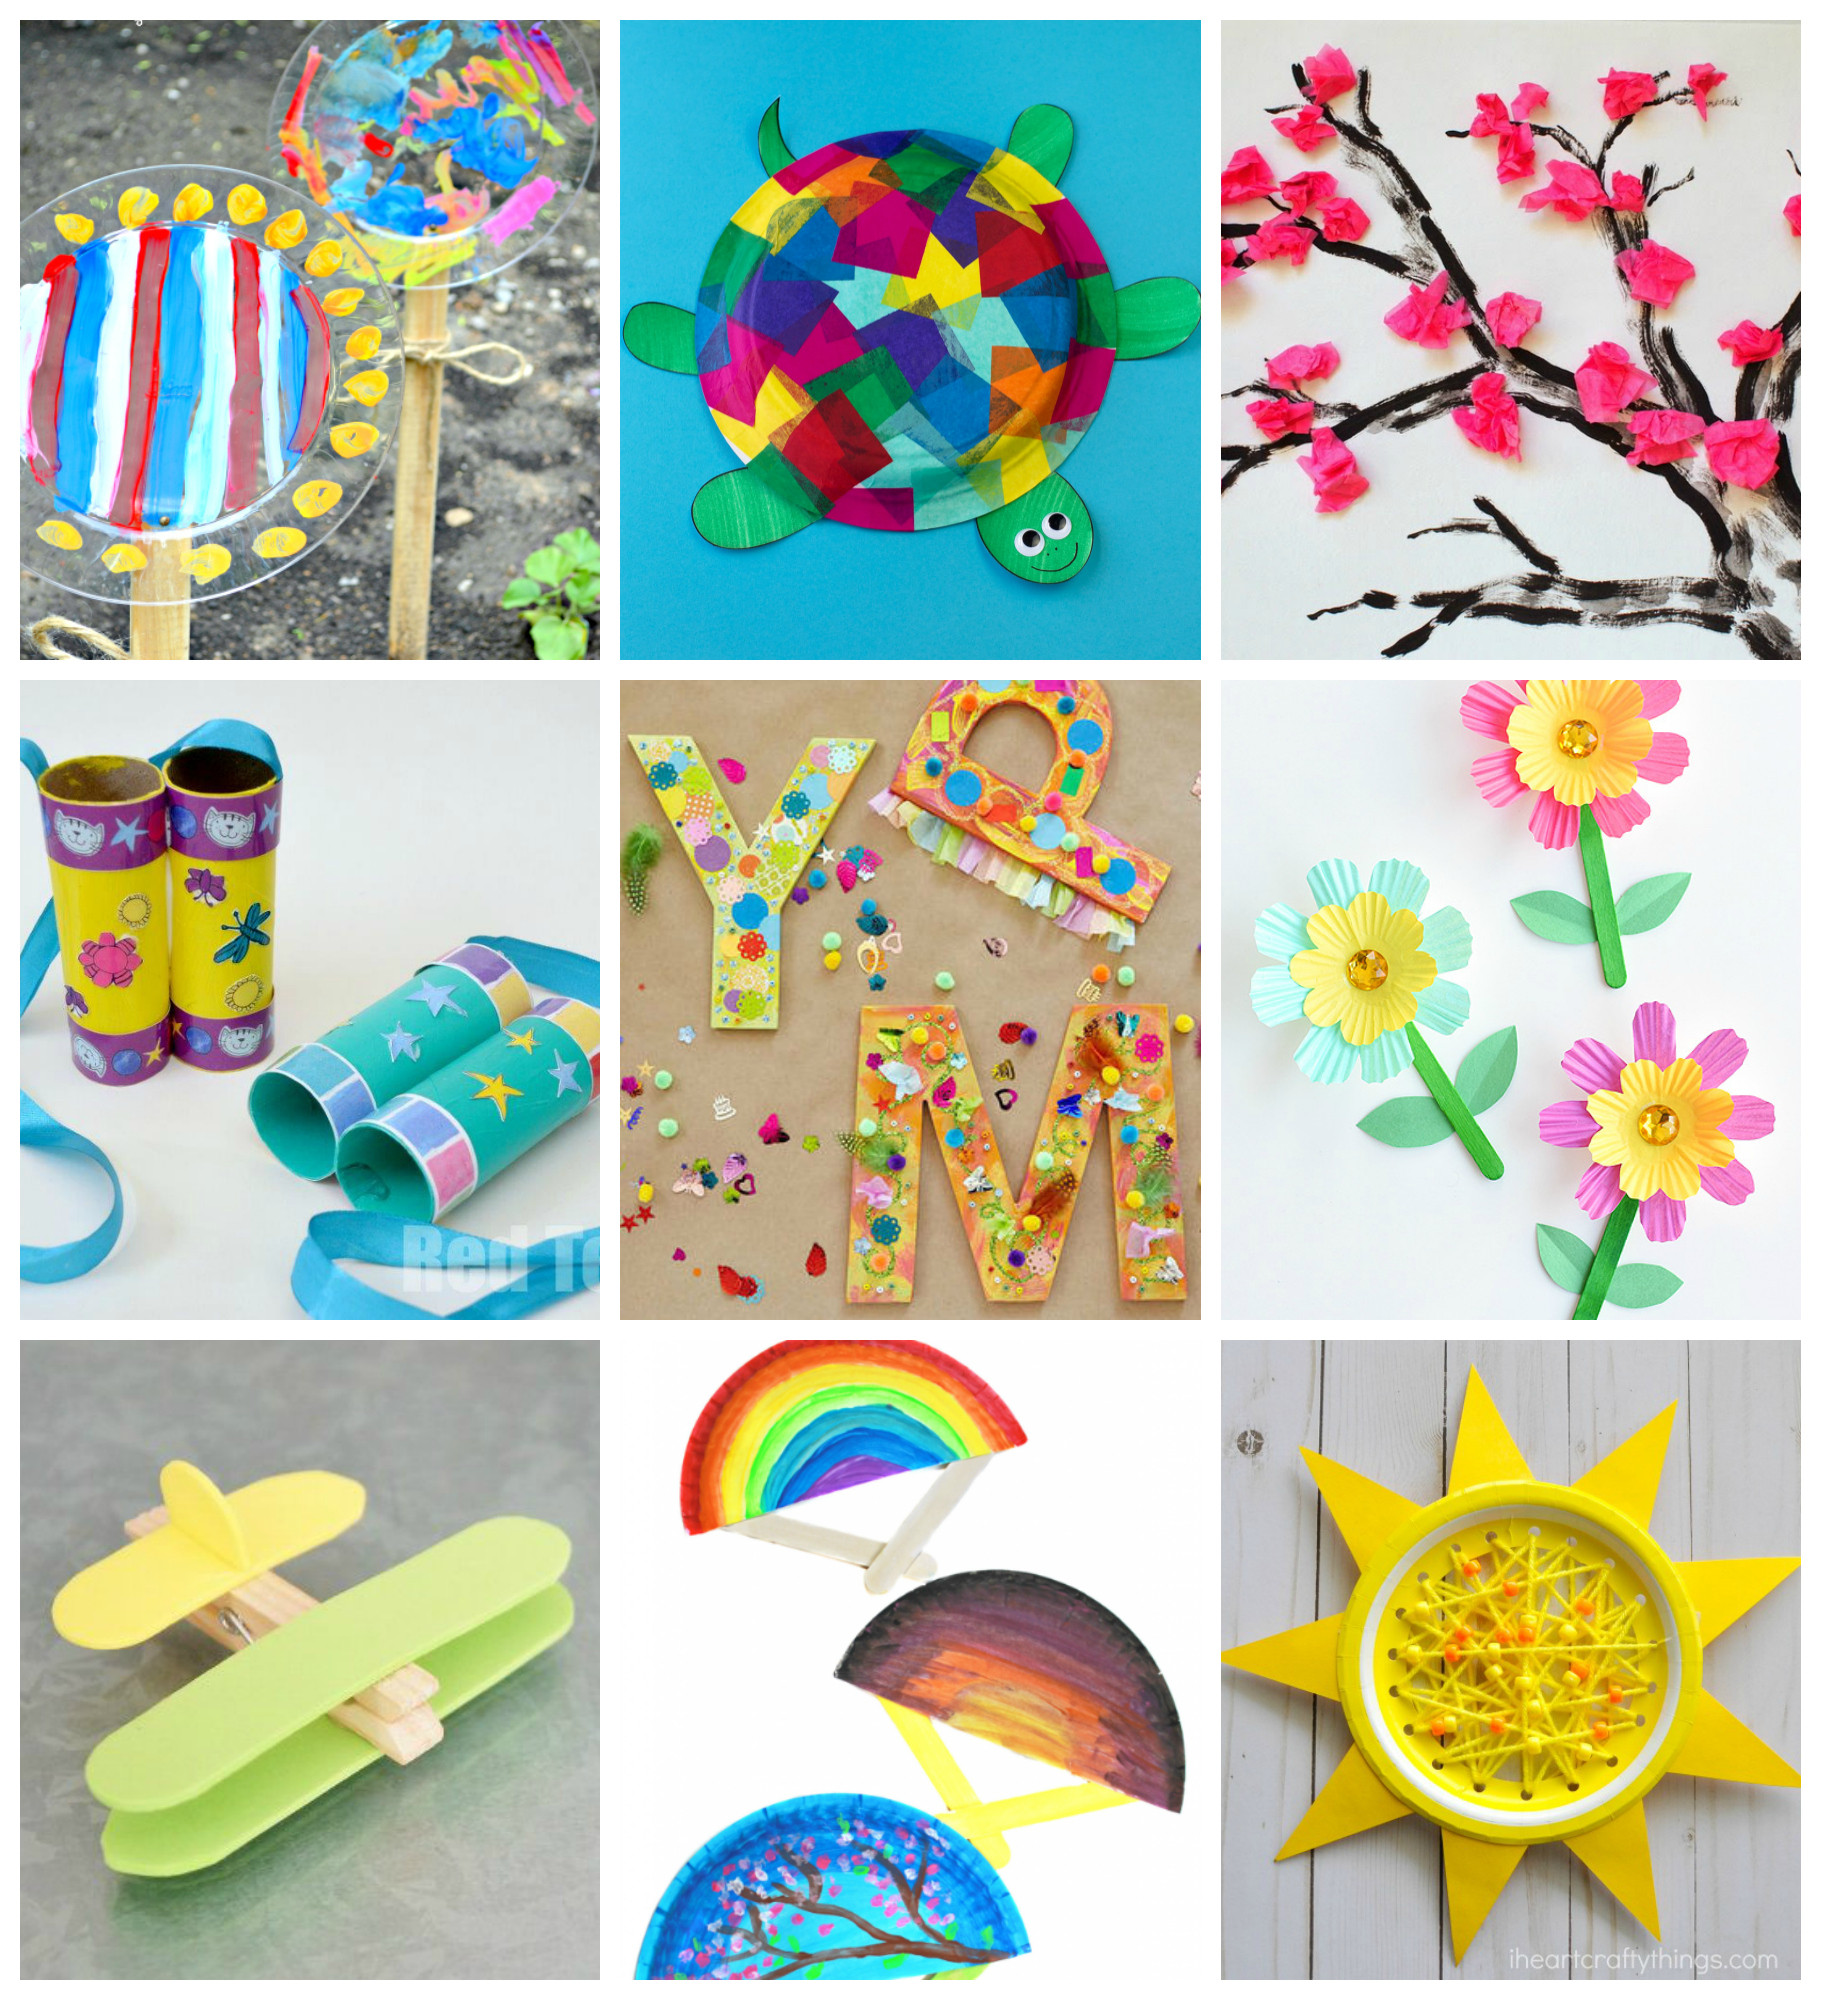 Best ideas about Easy Activities For Kids . Save or Pin 50 Quick & Easy Kids Crafts that ANYONE Can Make Now.